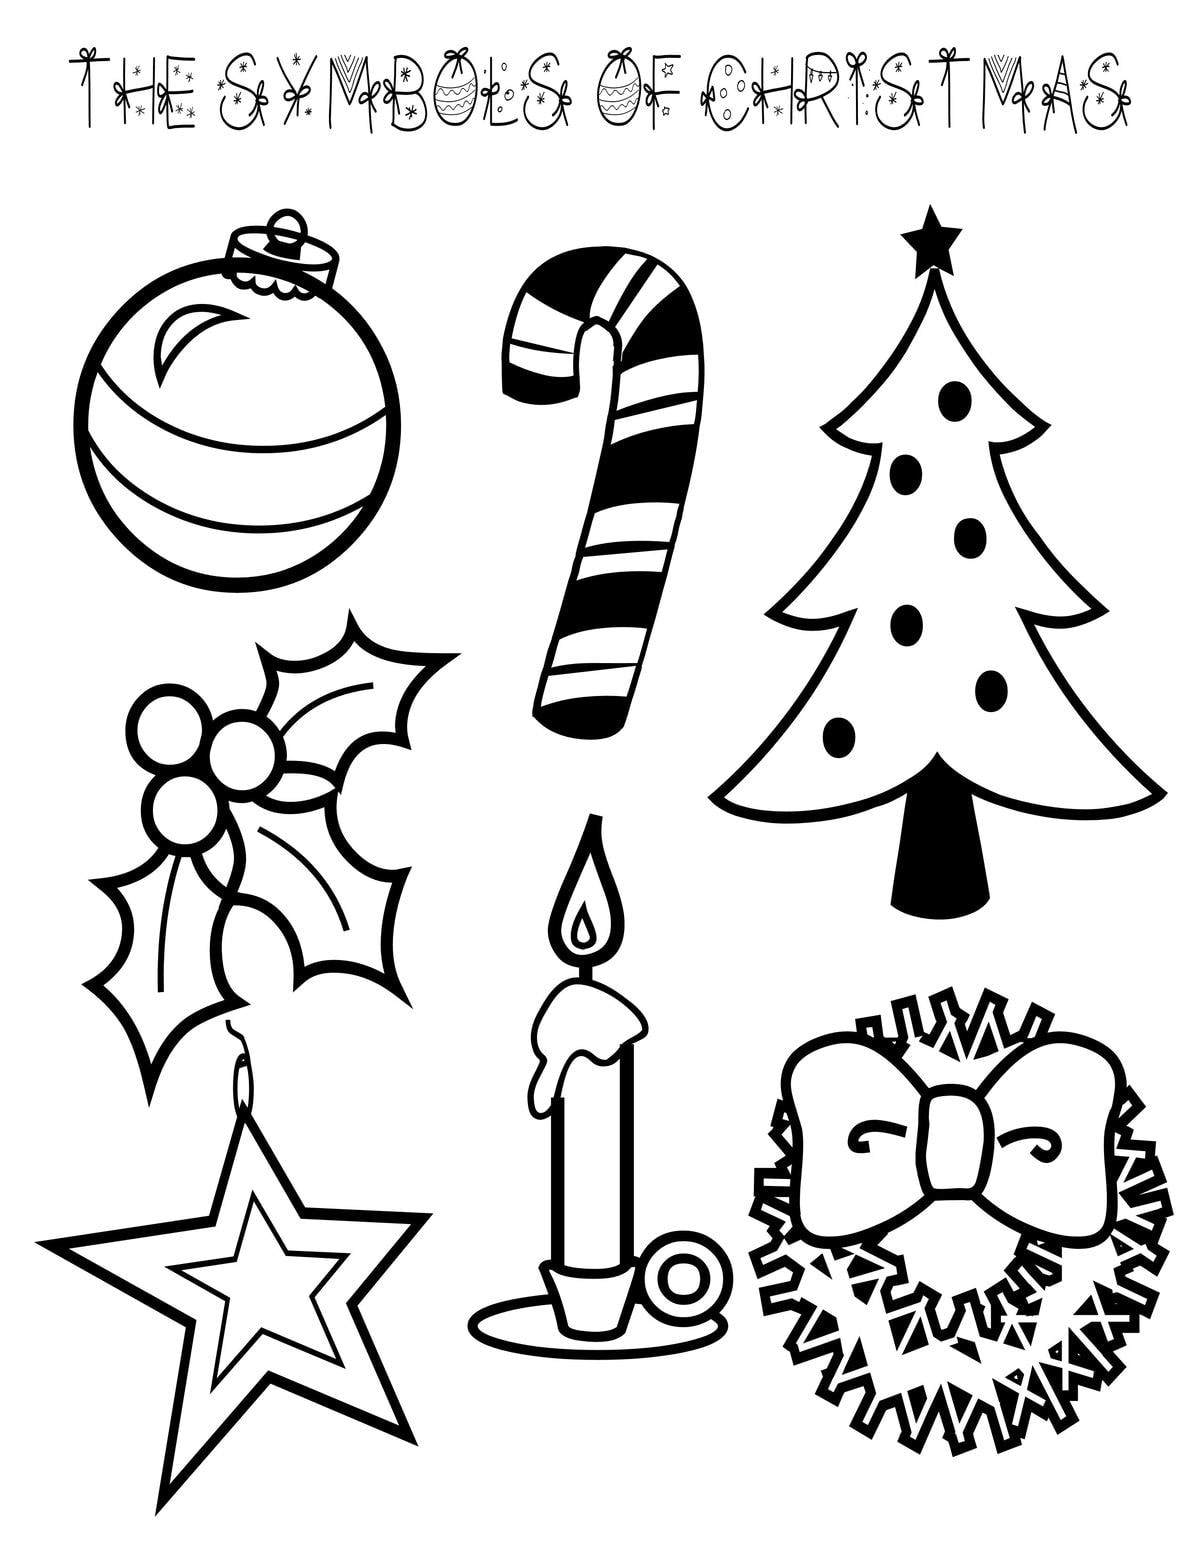 ho iday coloring pages - photo#48